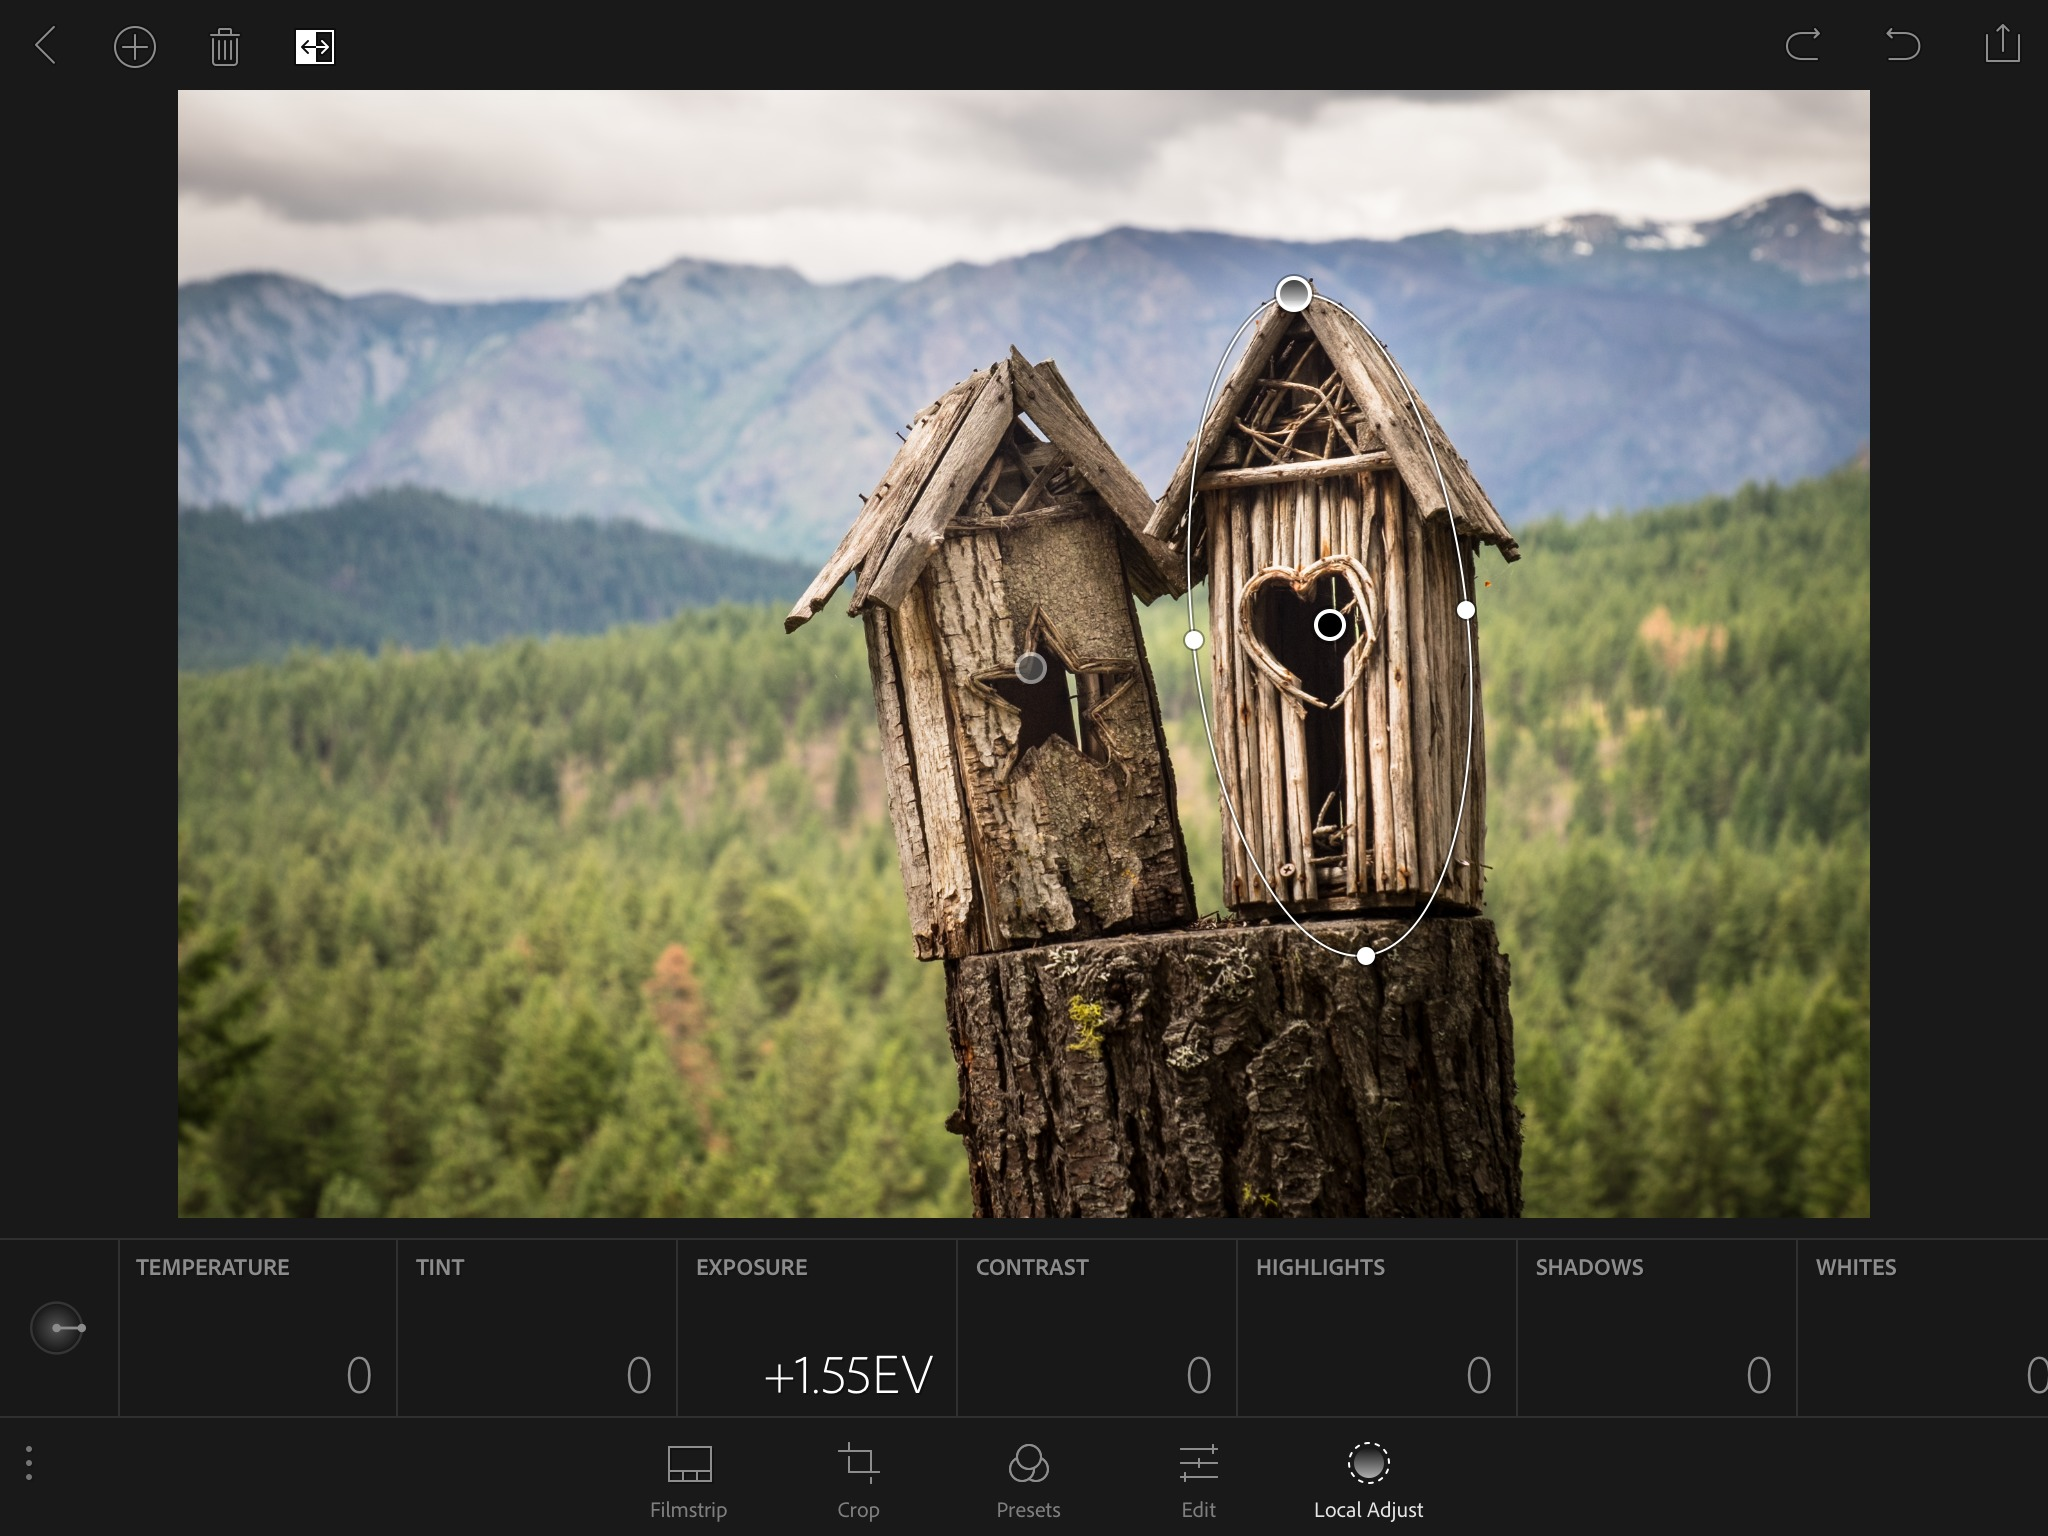 Lightroom for iOS 2 4 Changes Mobile Photo Workflow - TidBITS